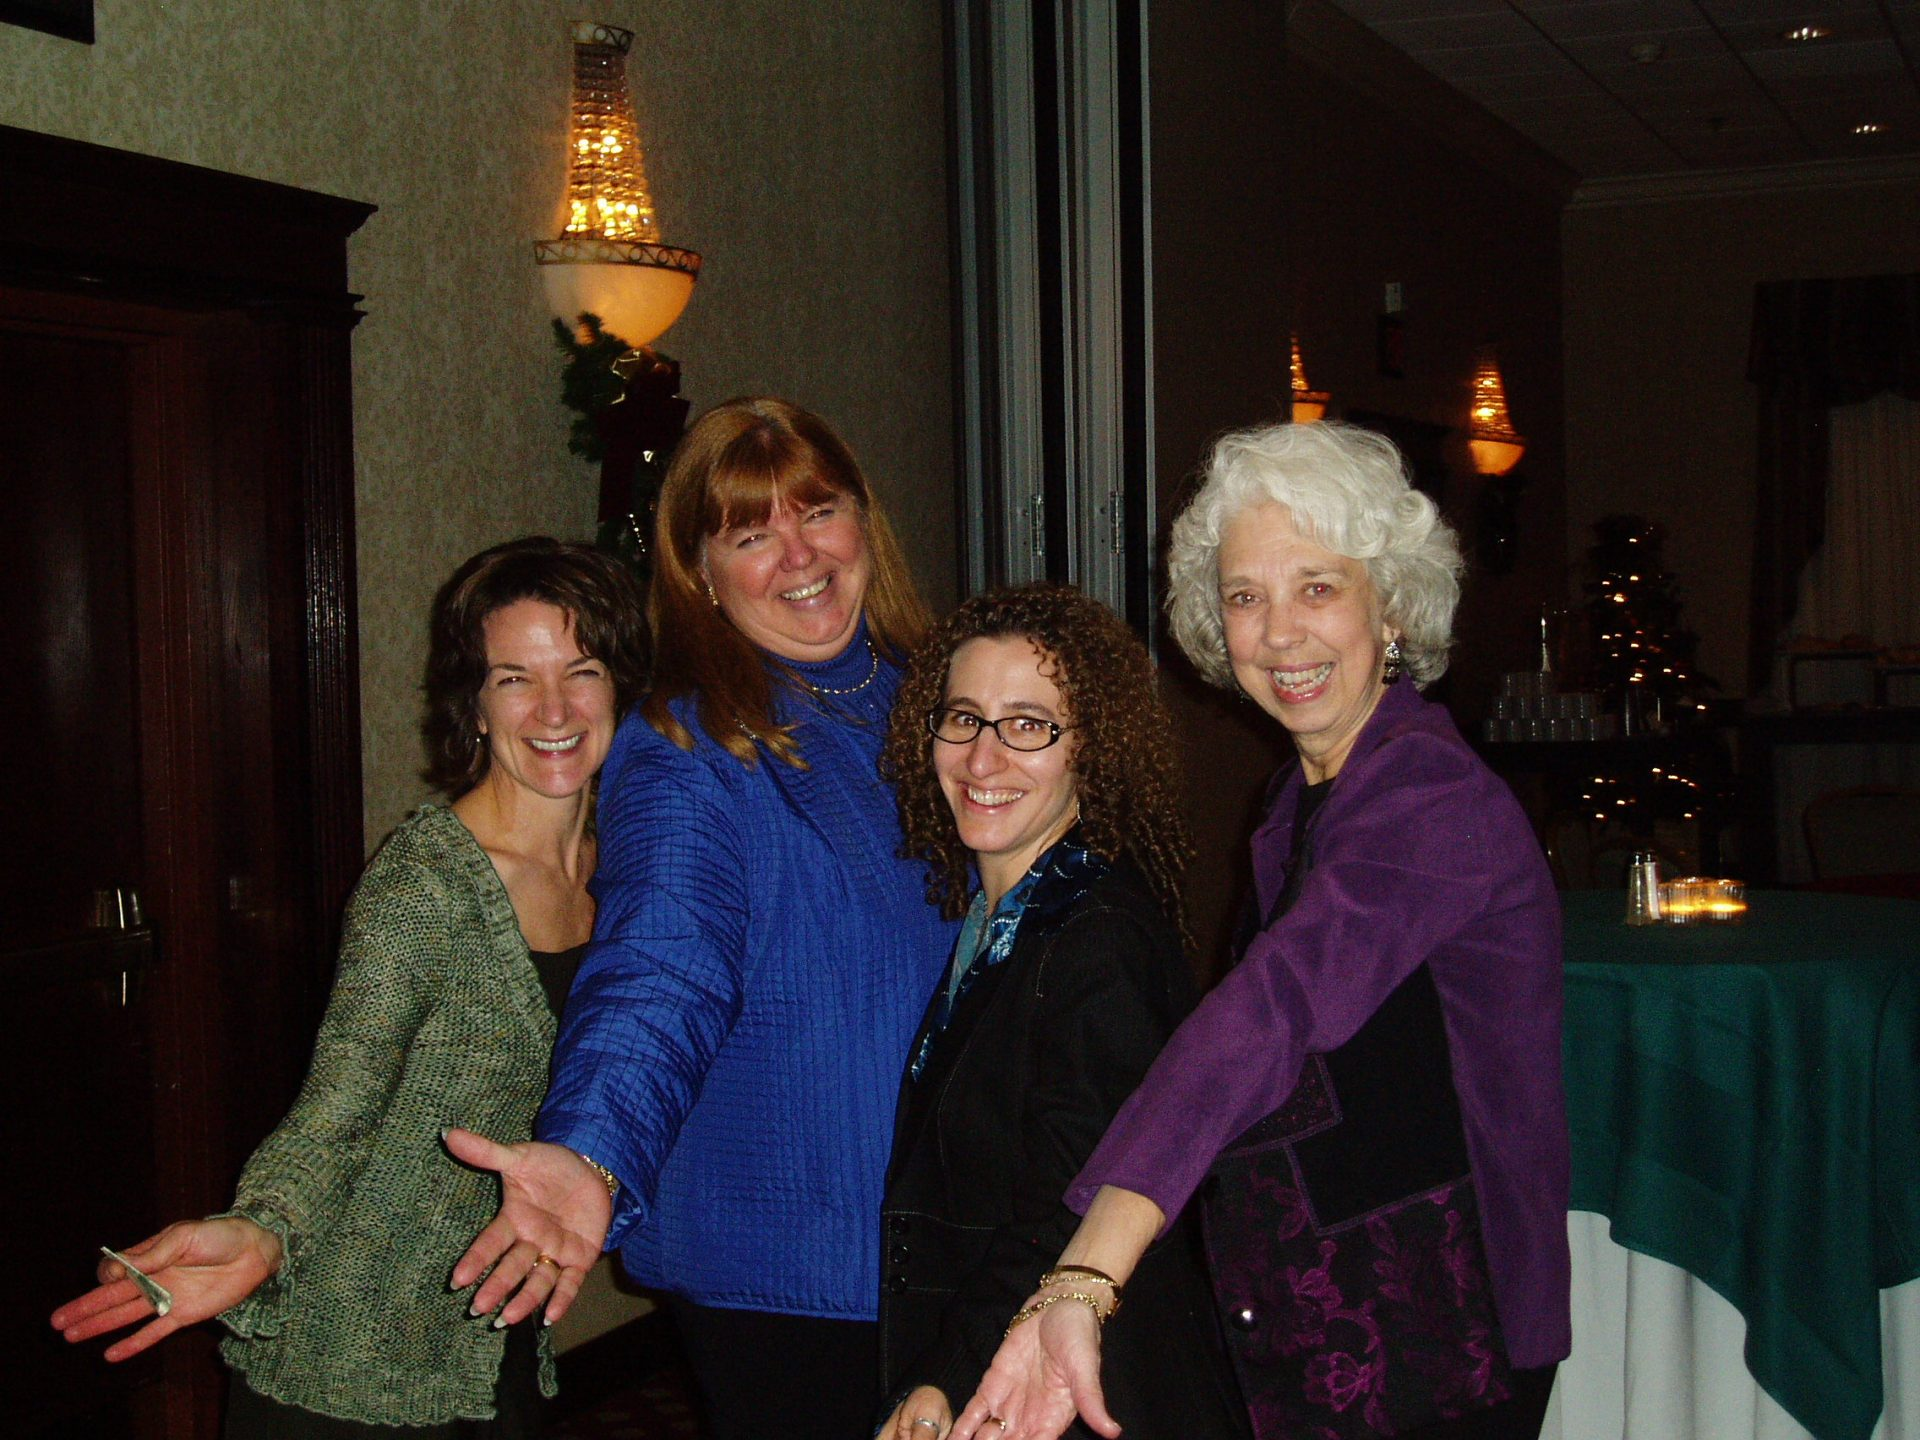 2007 Holiday Party - Marcy, Sue, Sara, Laura